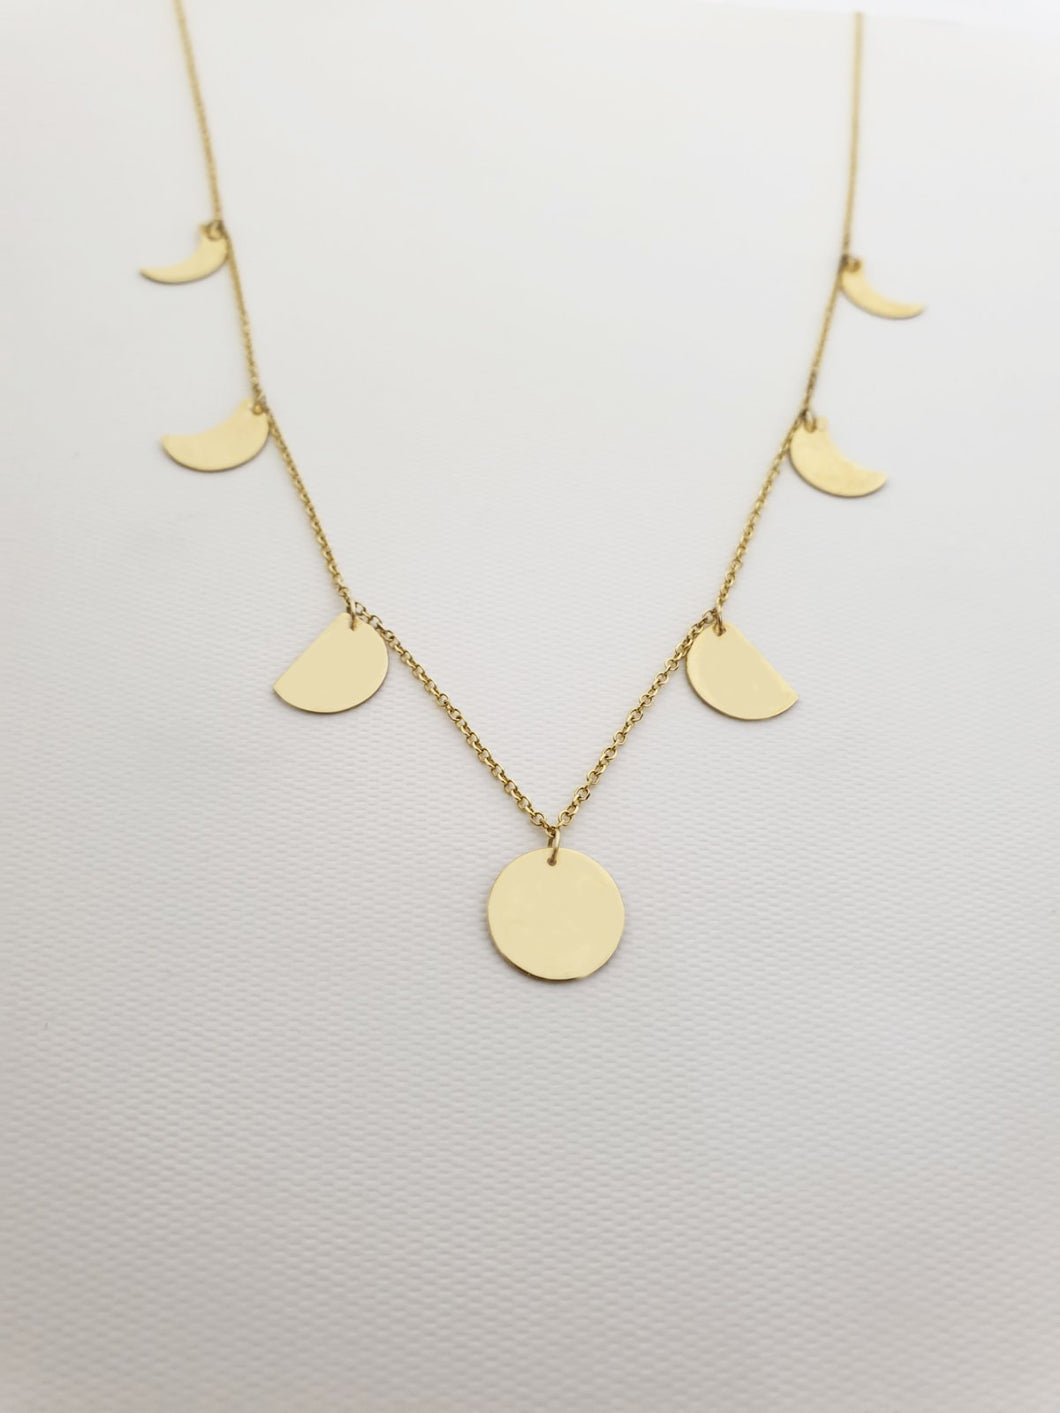 7 Phases of the moon Necklace